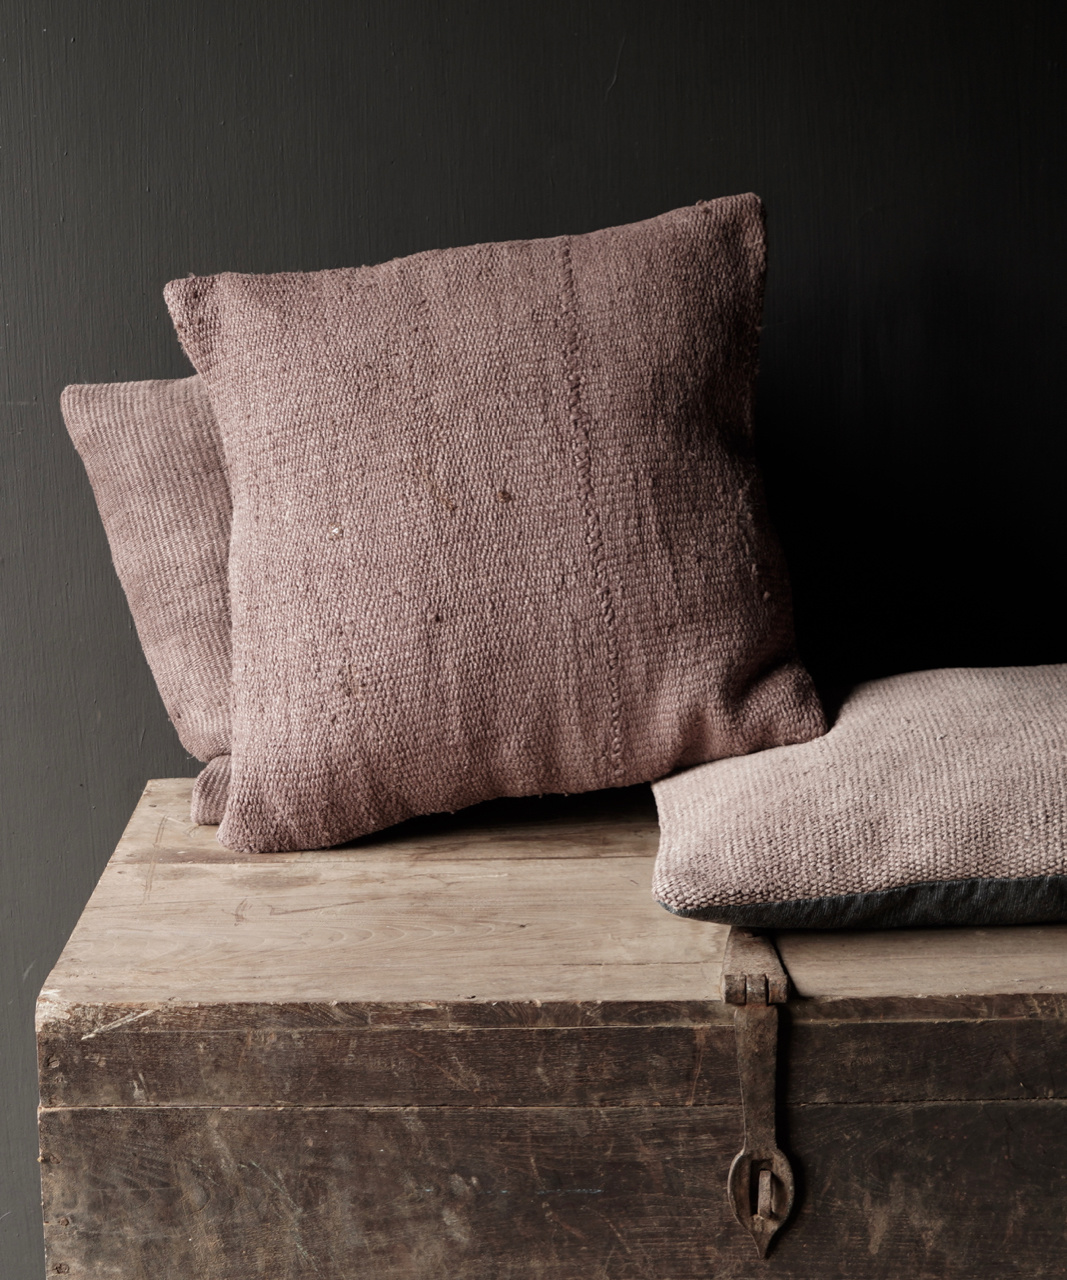 Hemp Kelim Cushion Handmade in the color mauve-1